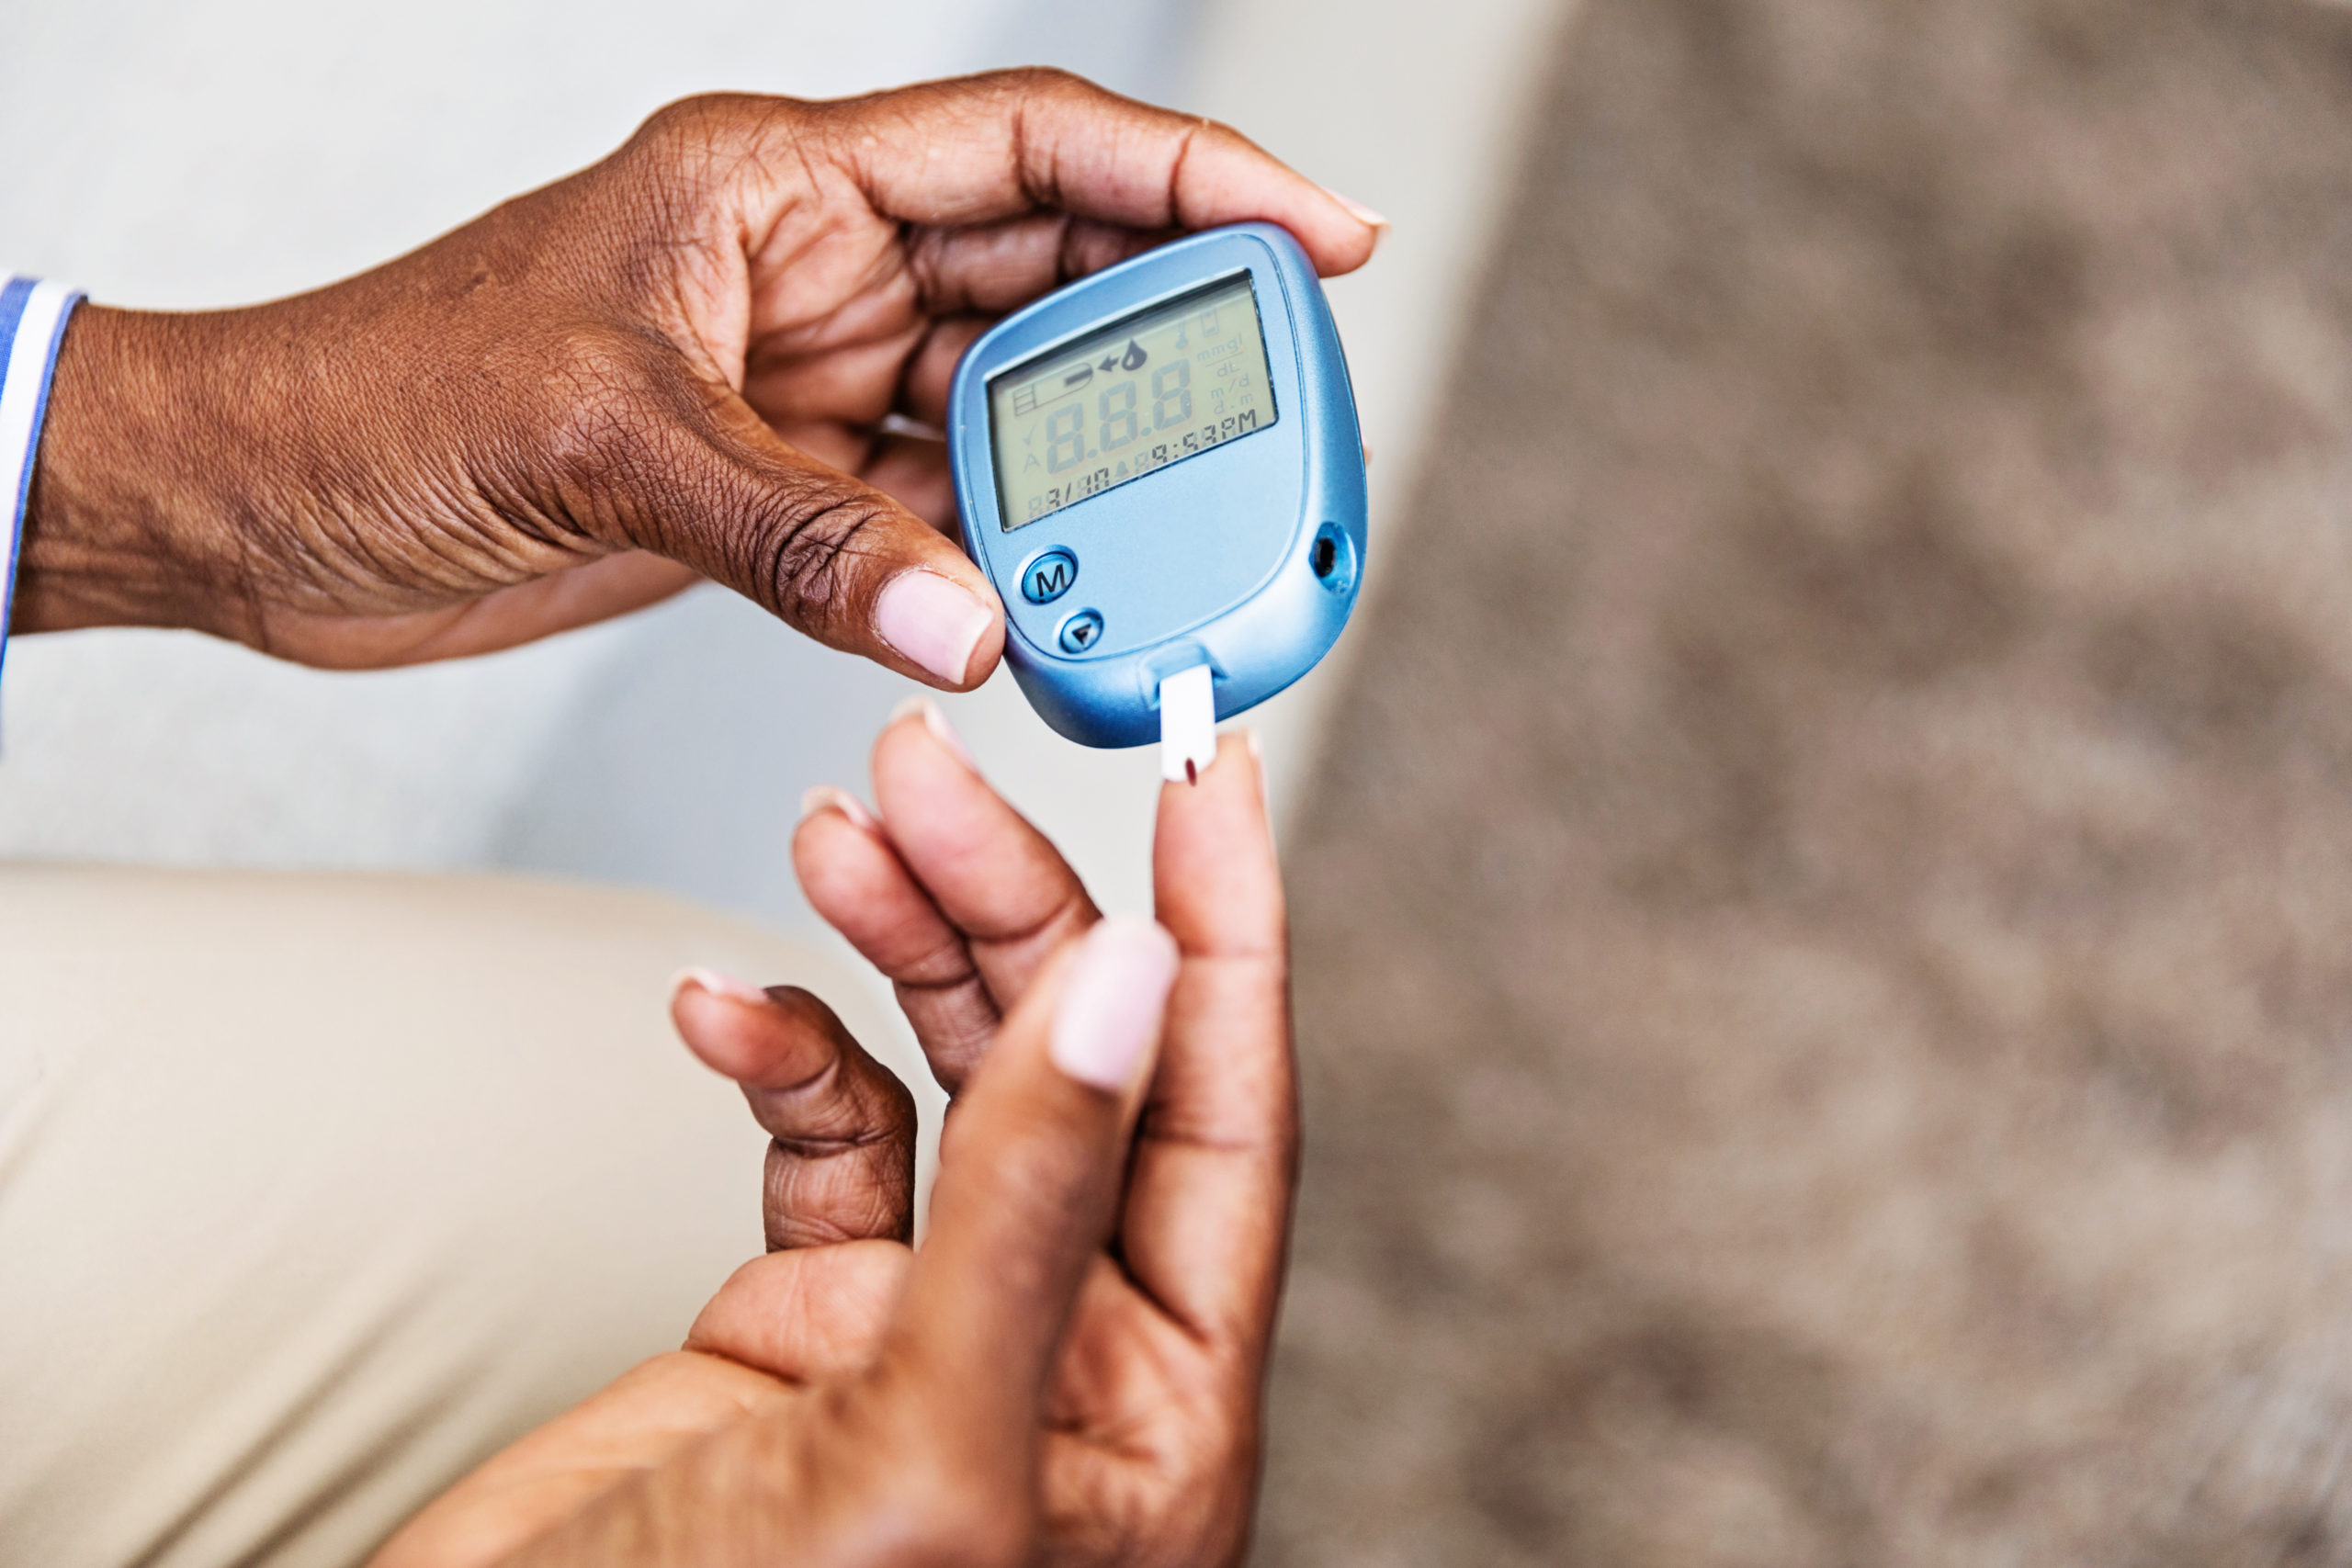 woman with diabetes checking her blood sugar